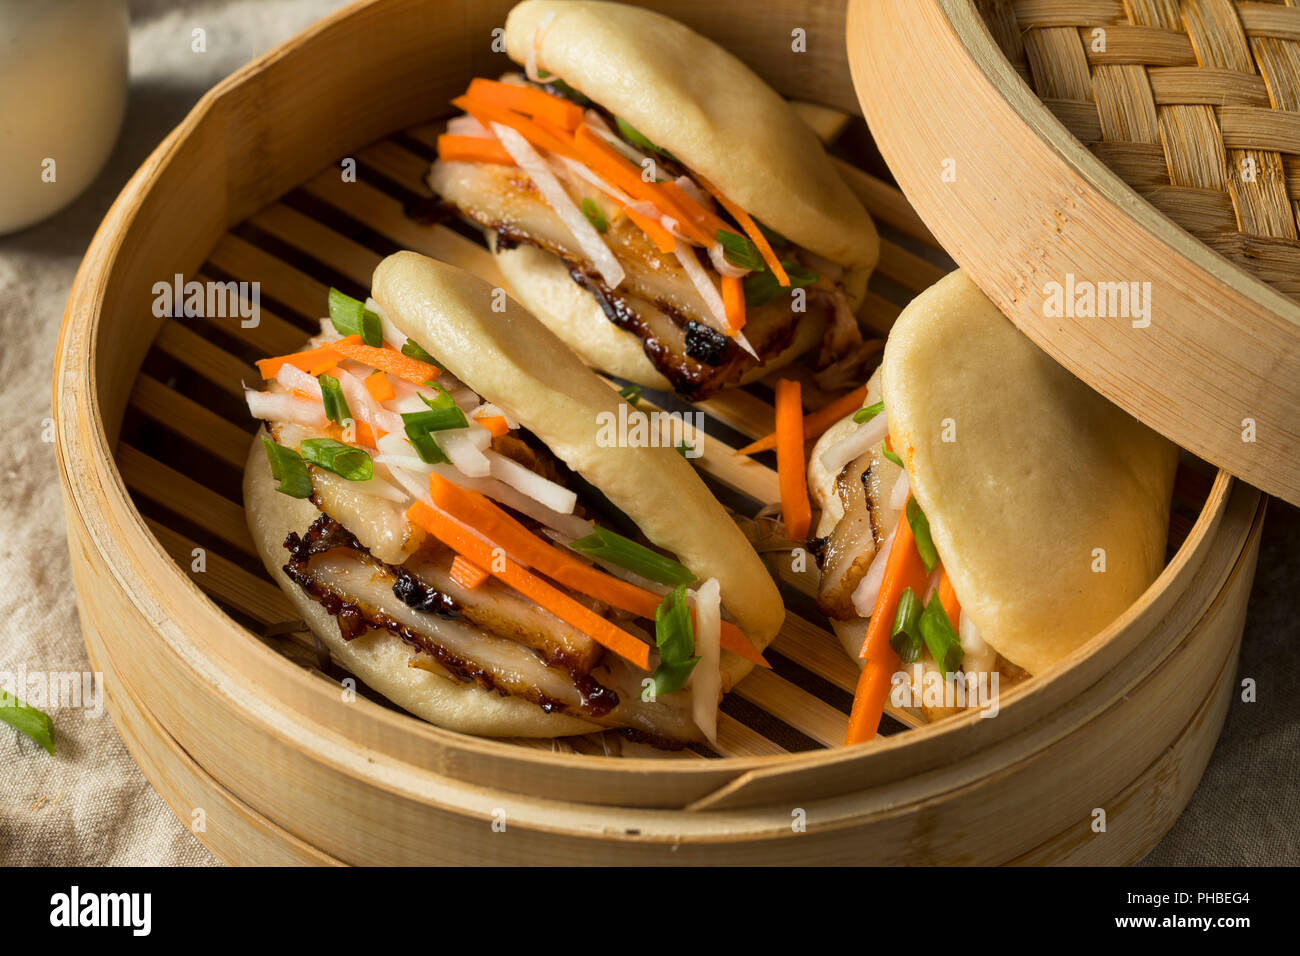 Homemade Steamed Pork Belly Bao Buns with Veggies - Stock Image